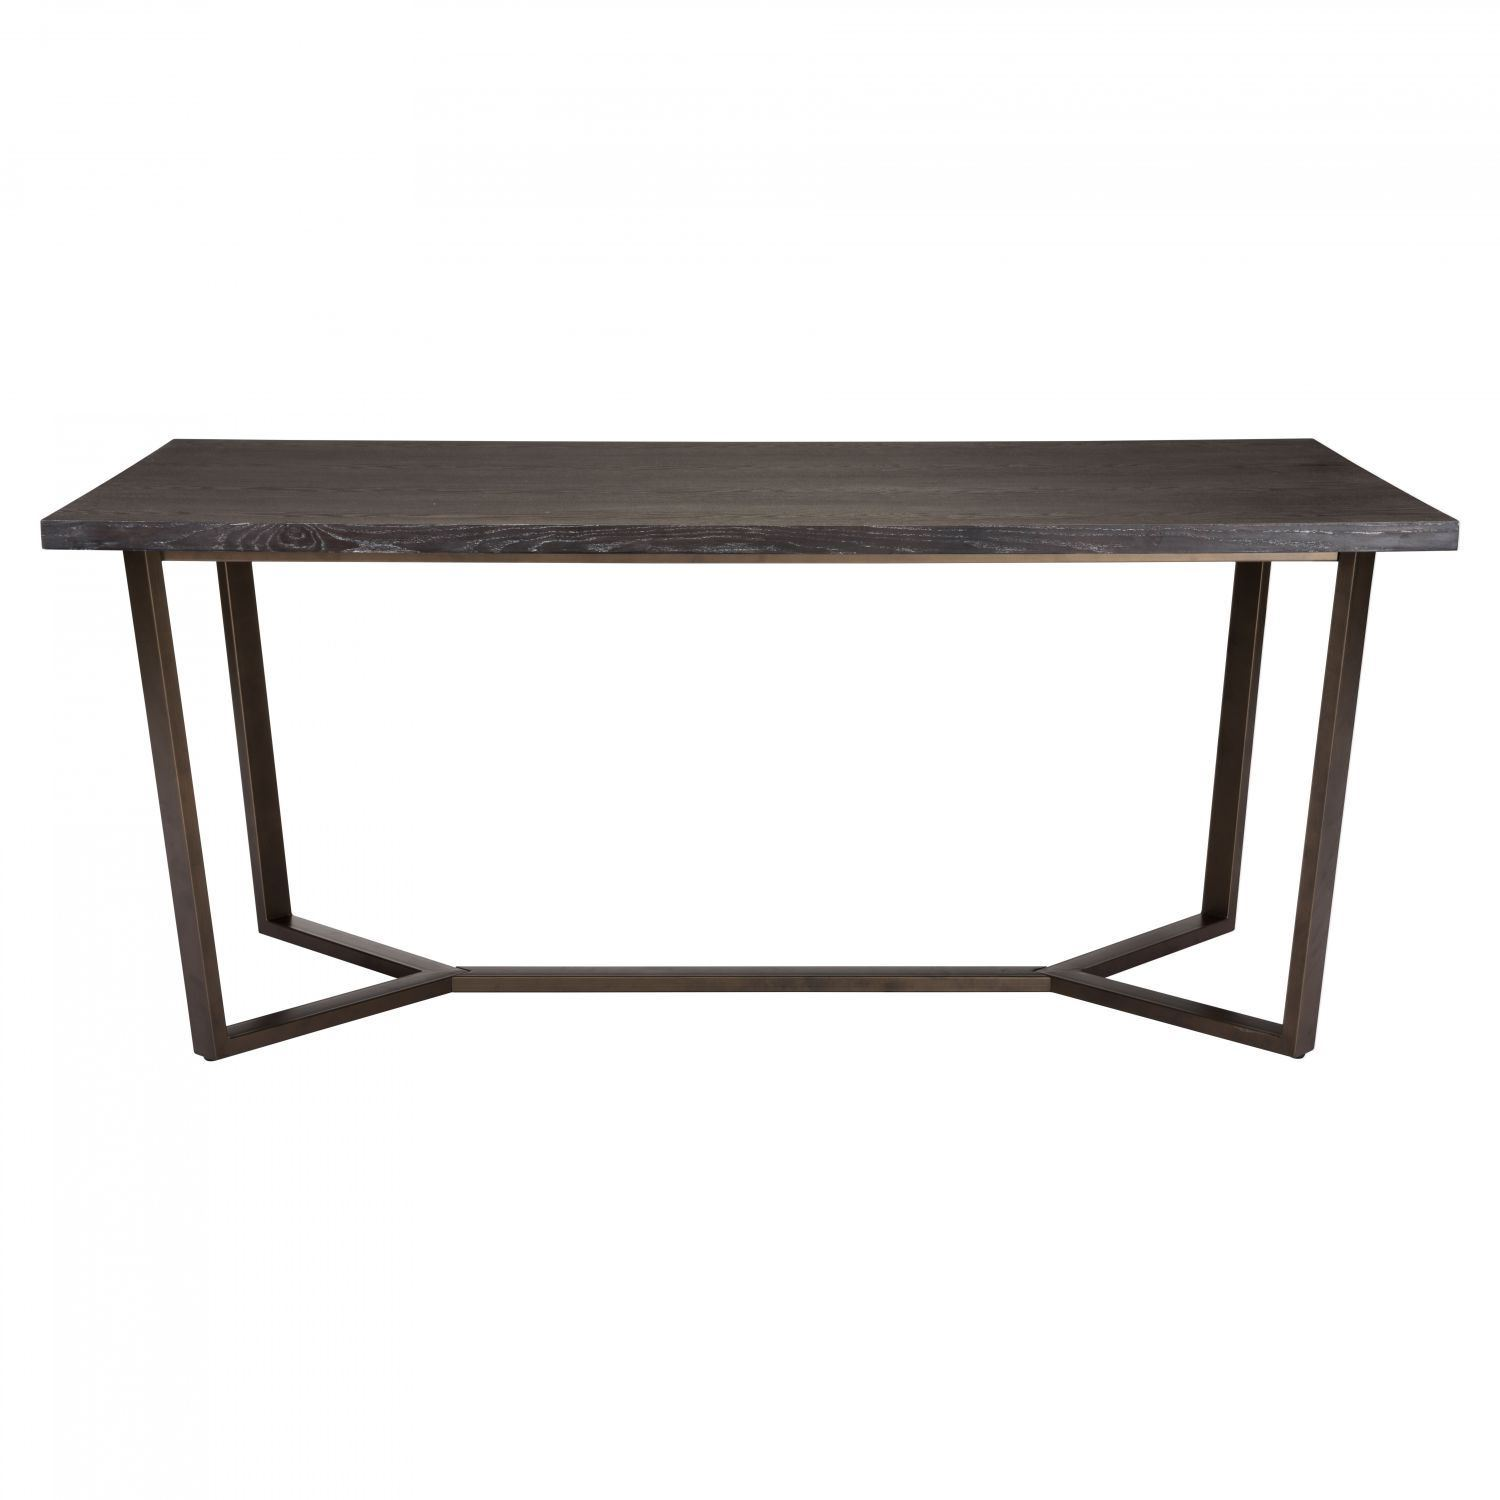 Picture of Brooklyn Dining Table Oak Antique Brass Box Brooklyn Dining  Table Oak Antique Brass. - Brooklyn Antique Furniture Getpaidforphotos.com